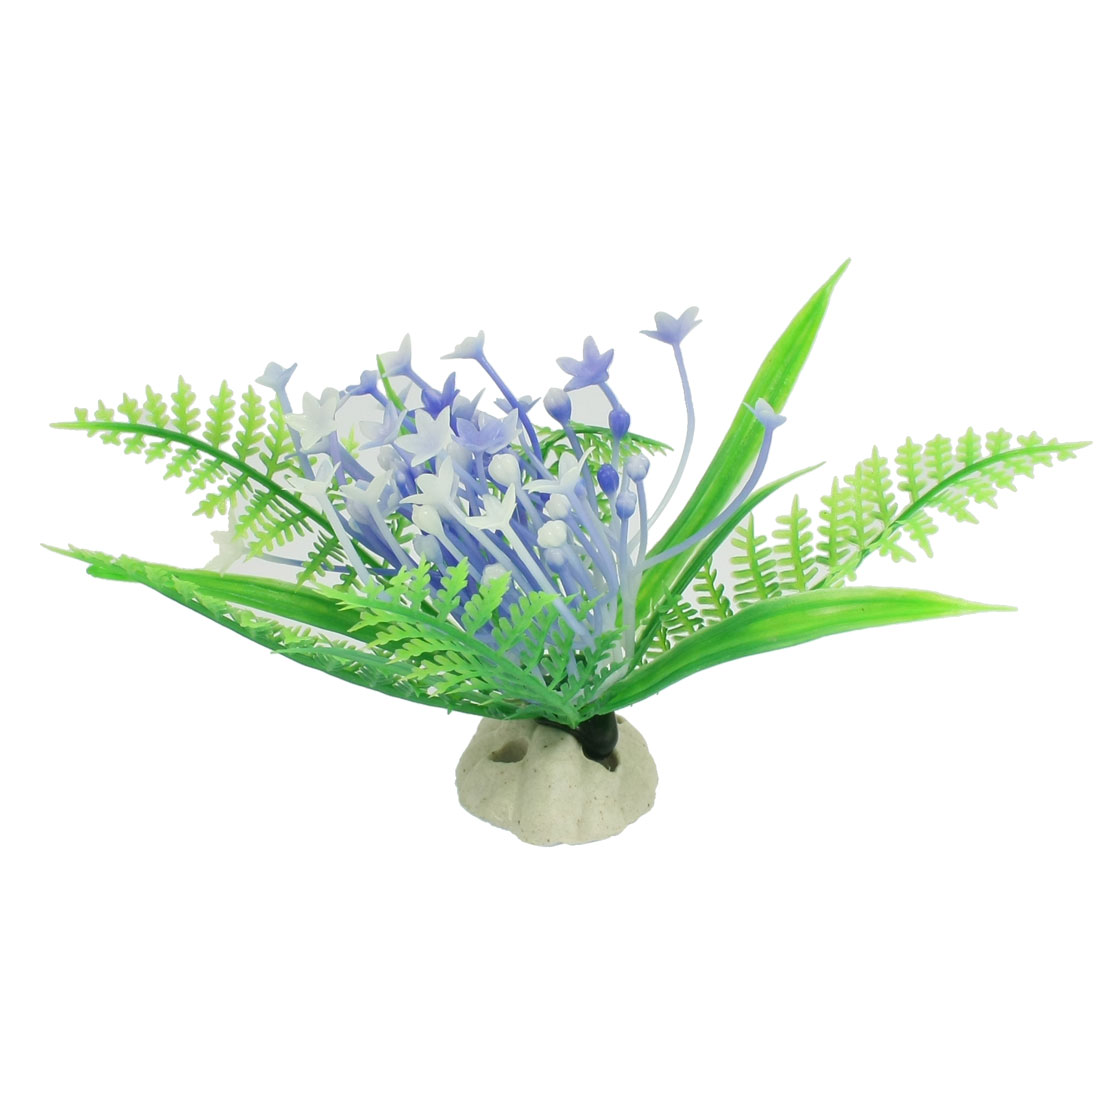 Plastic Plant Flower Aquarium Aquascaping Fish Tank Ornament Green Blue